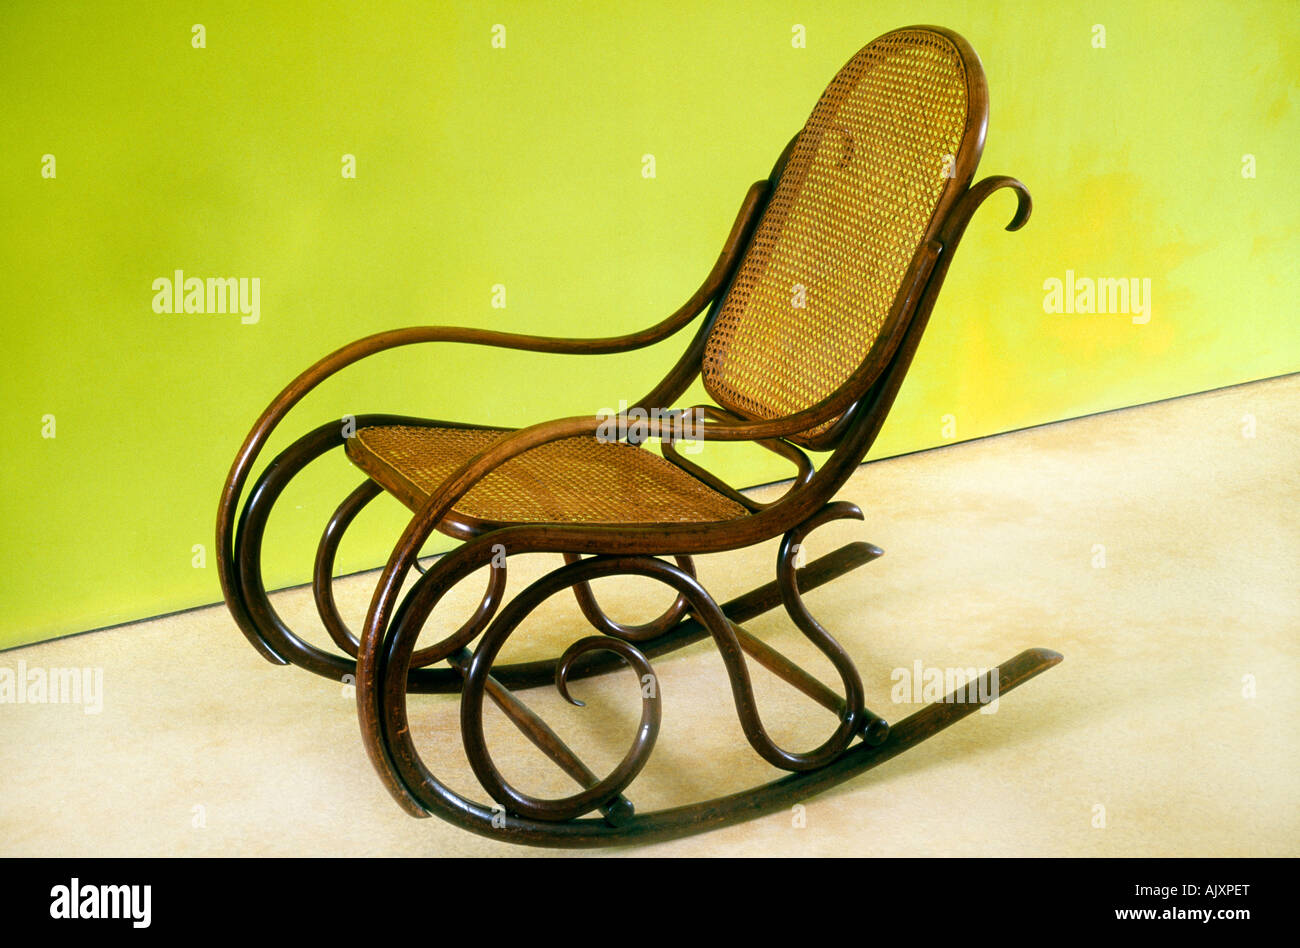 rocking chair cane red check tub bentwood 1930s stock photo 14828303 alamy